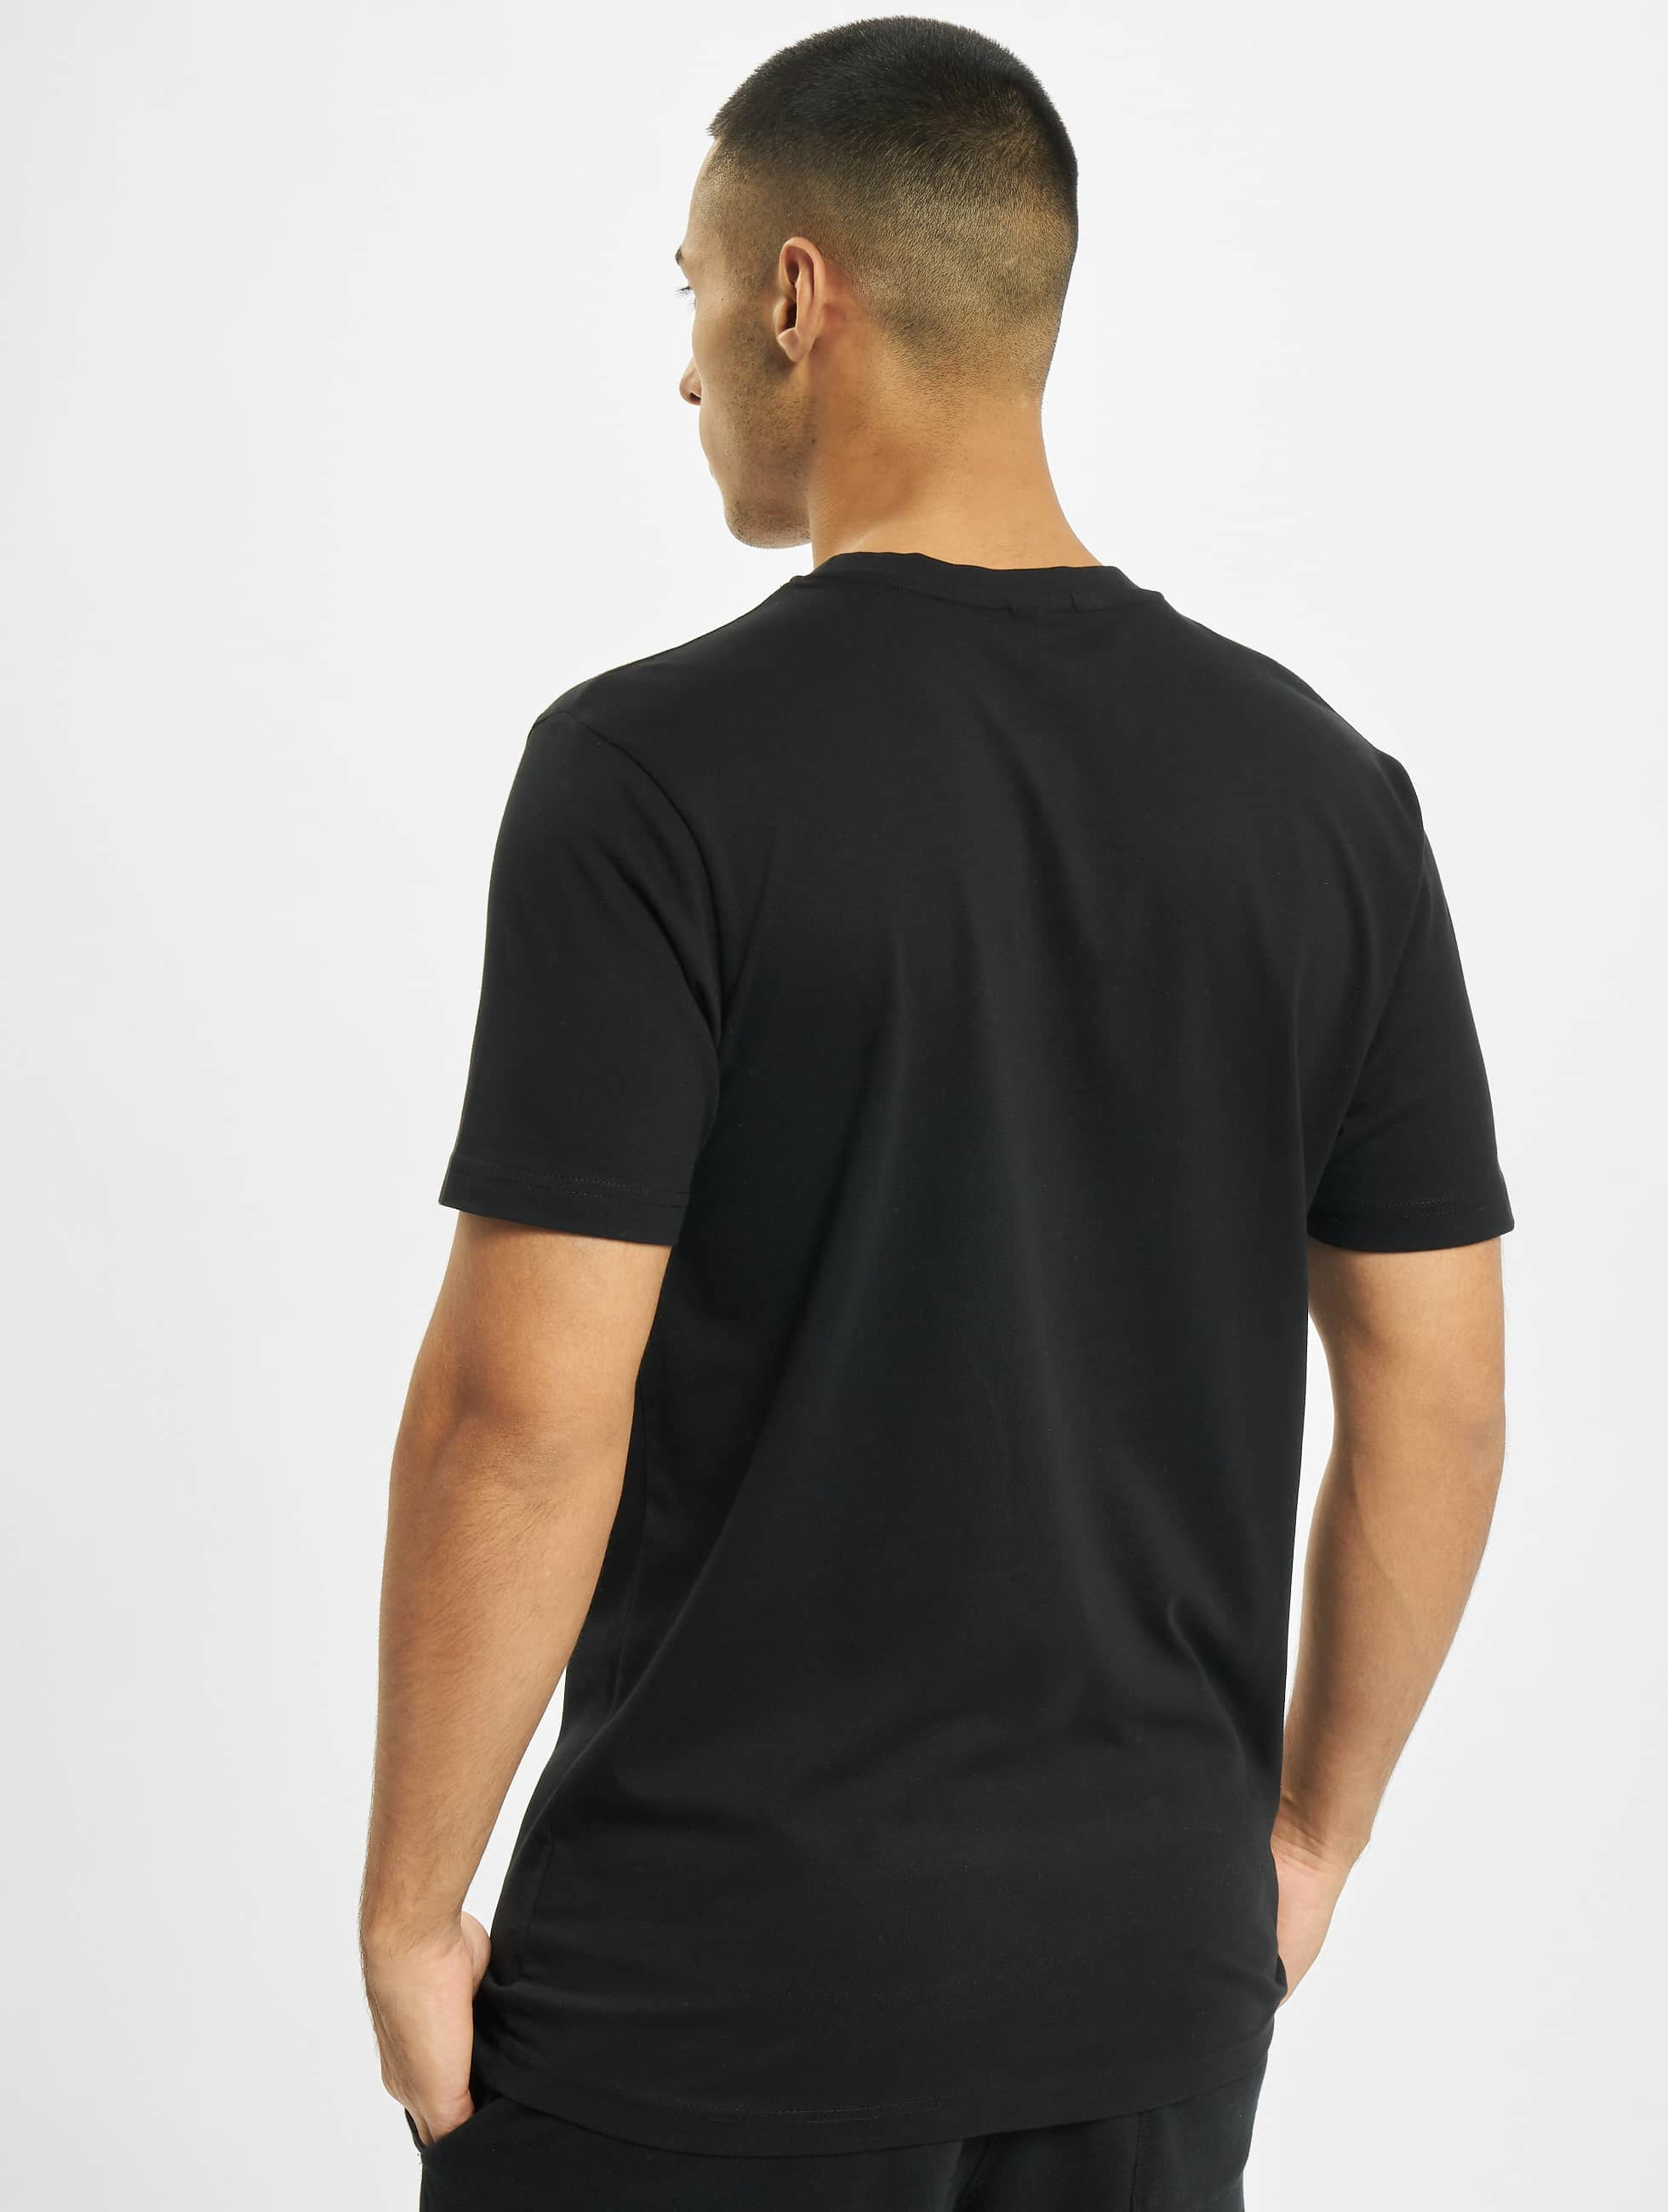 Merchcode T-Shirt Joy Division Up black